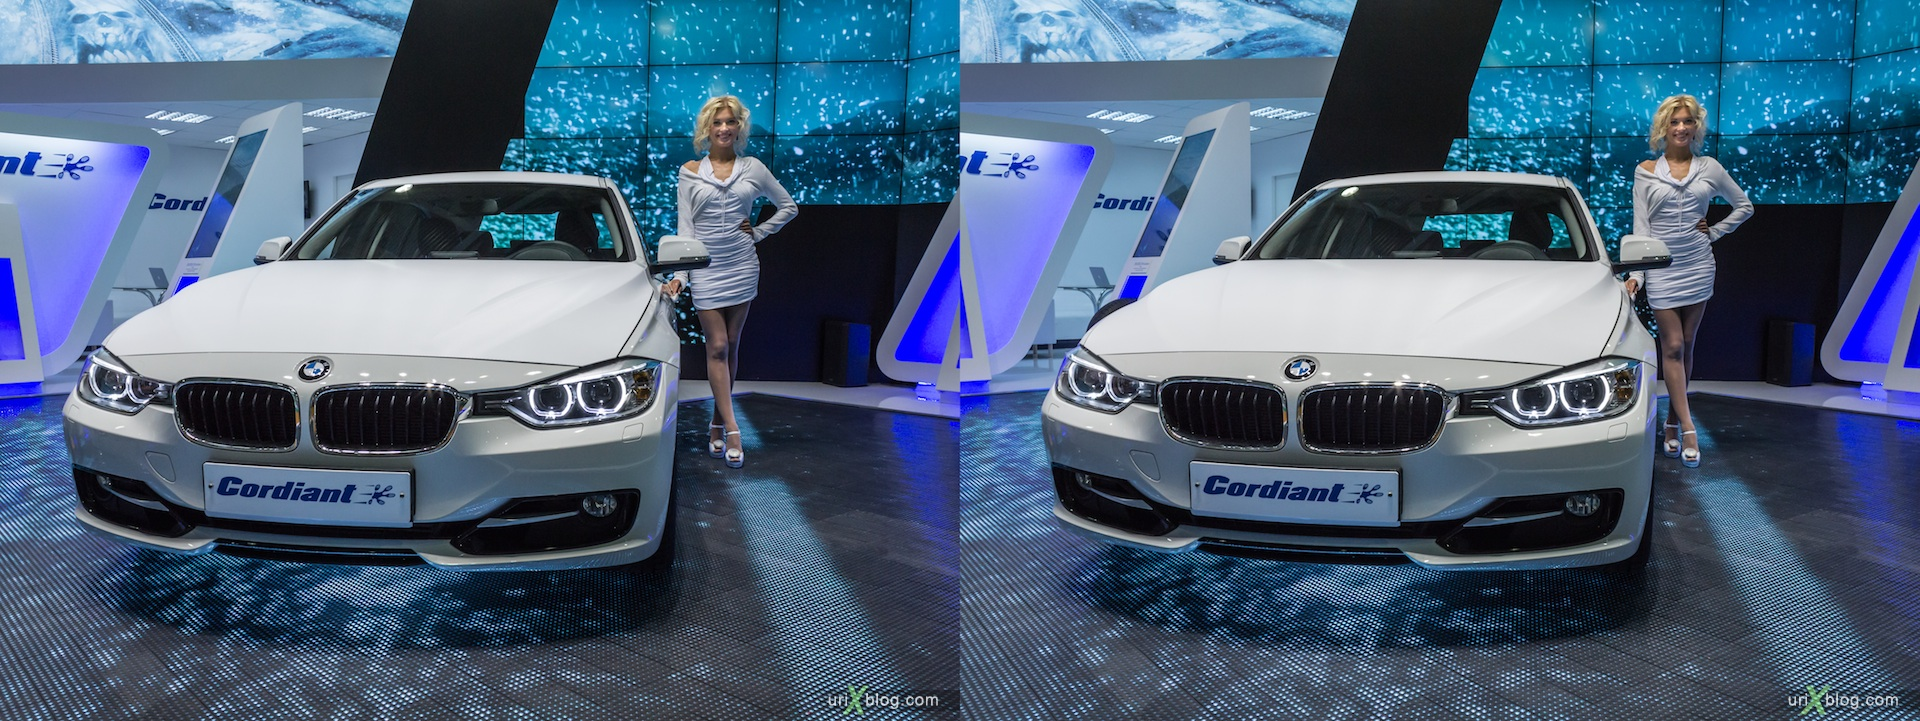 2012, BMW, girl, model, Moscow International Automobile Salon, auto show, 3D, stereo pair, cross-eyed, crossview